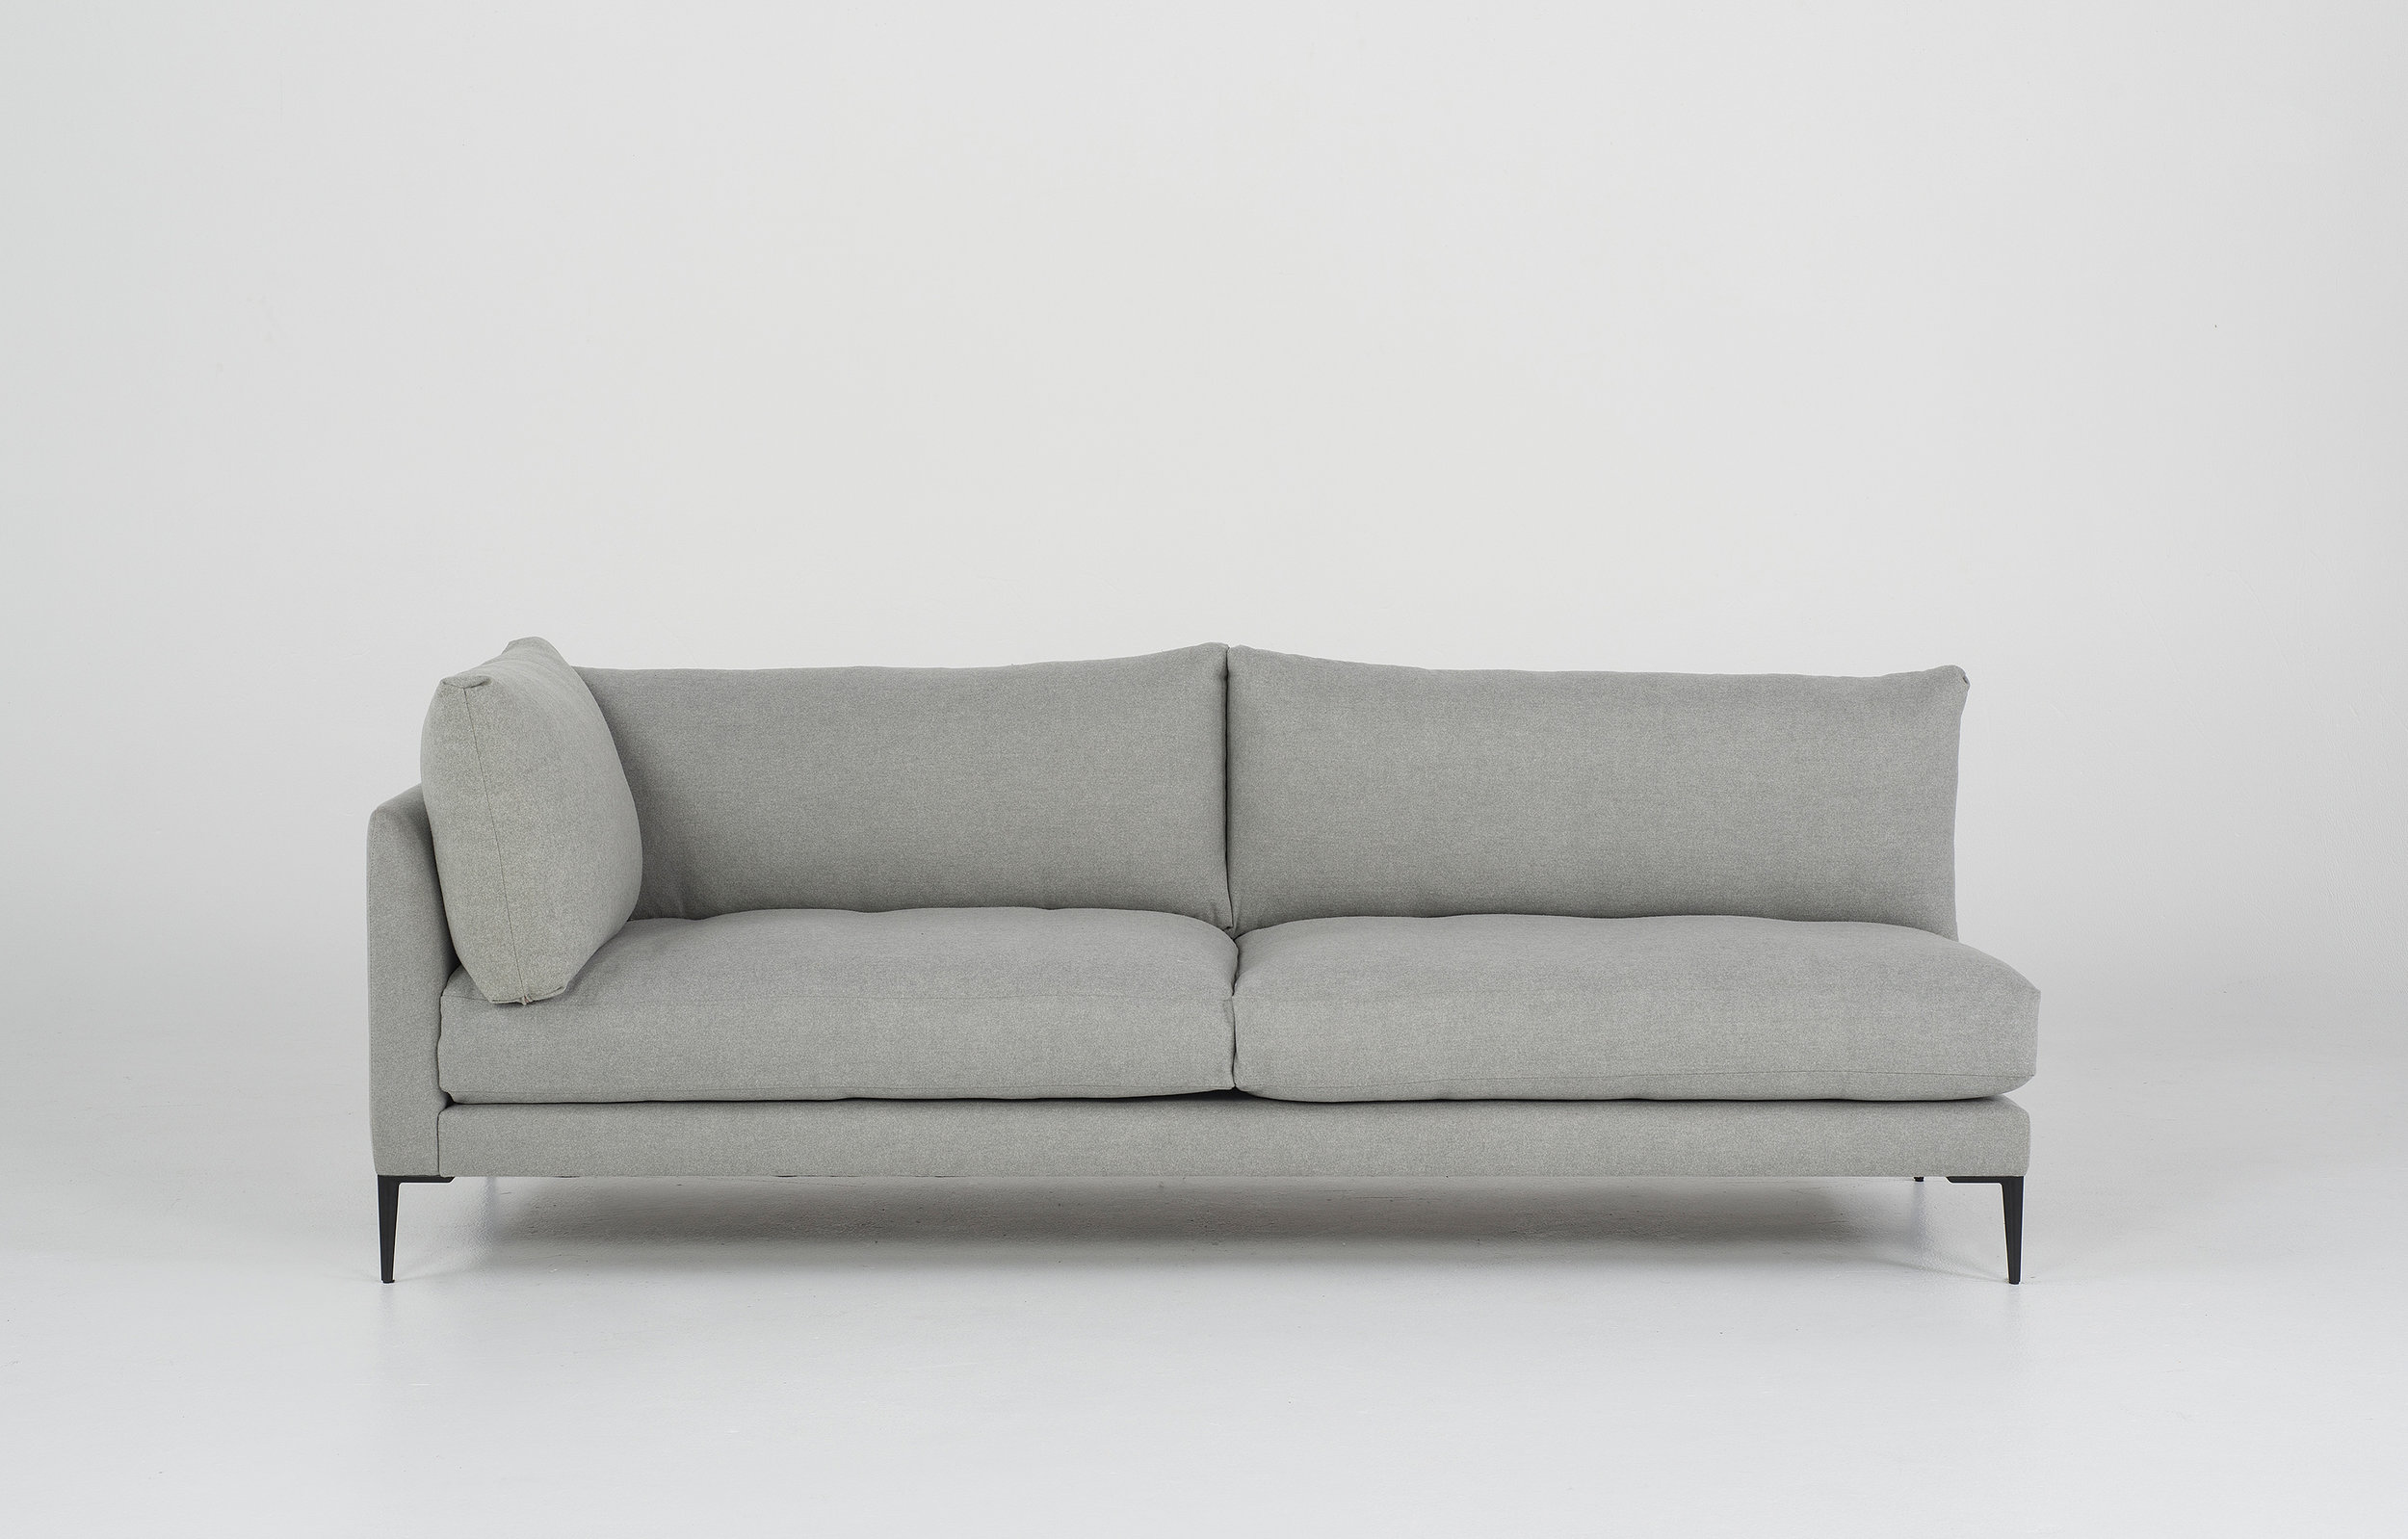 Eve Sofa 3 Seater w/Left Arm from $4,390.00